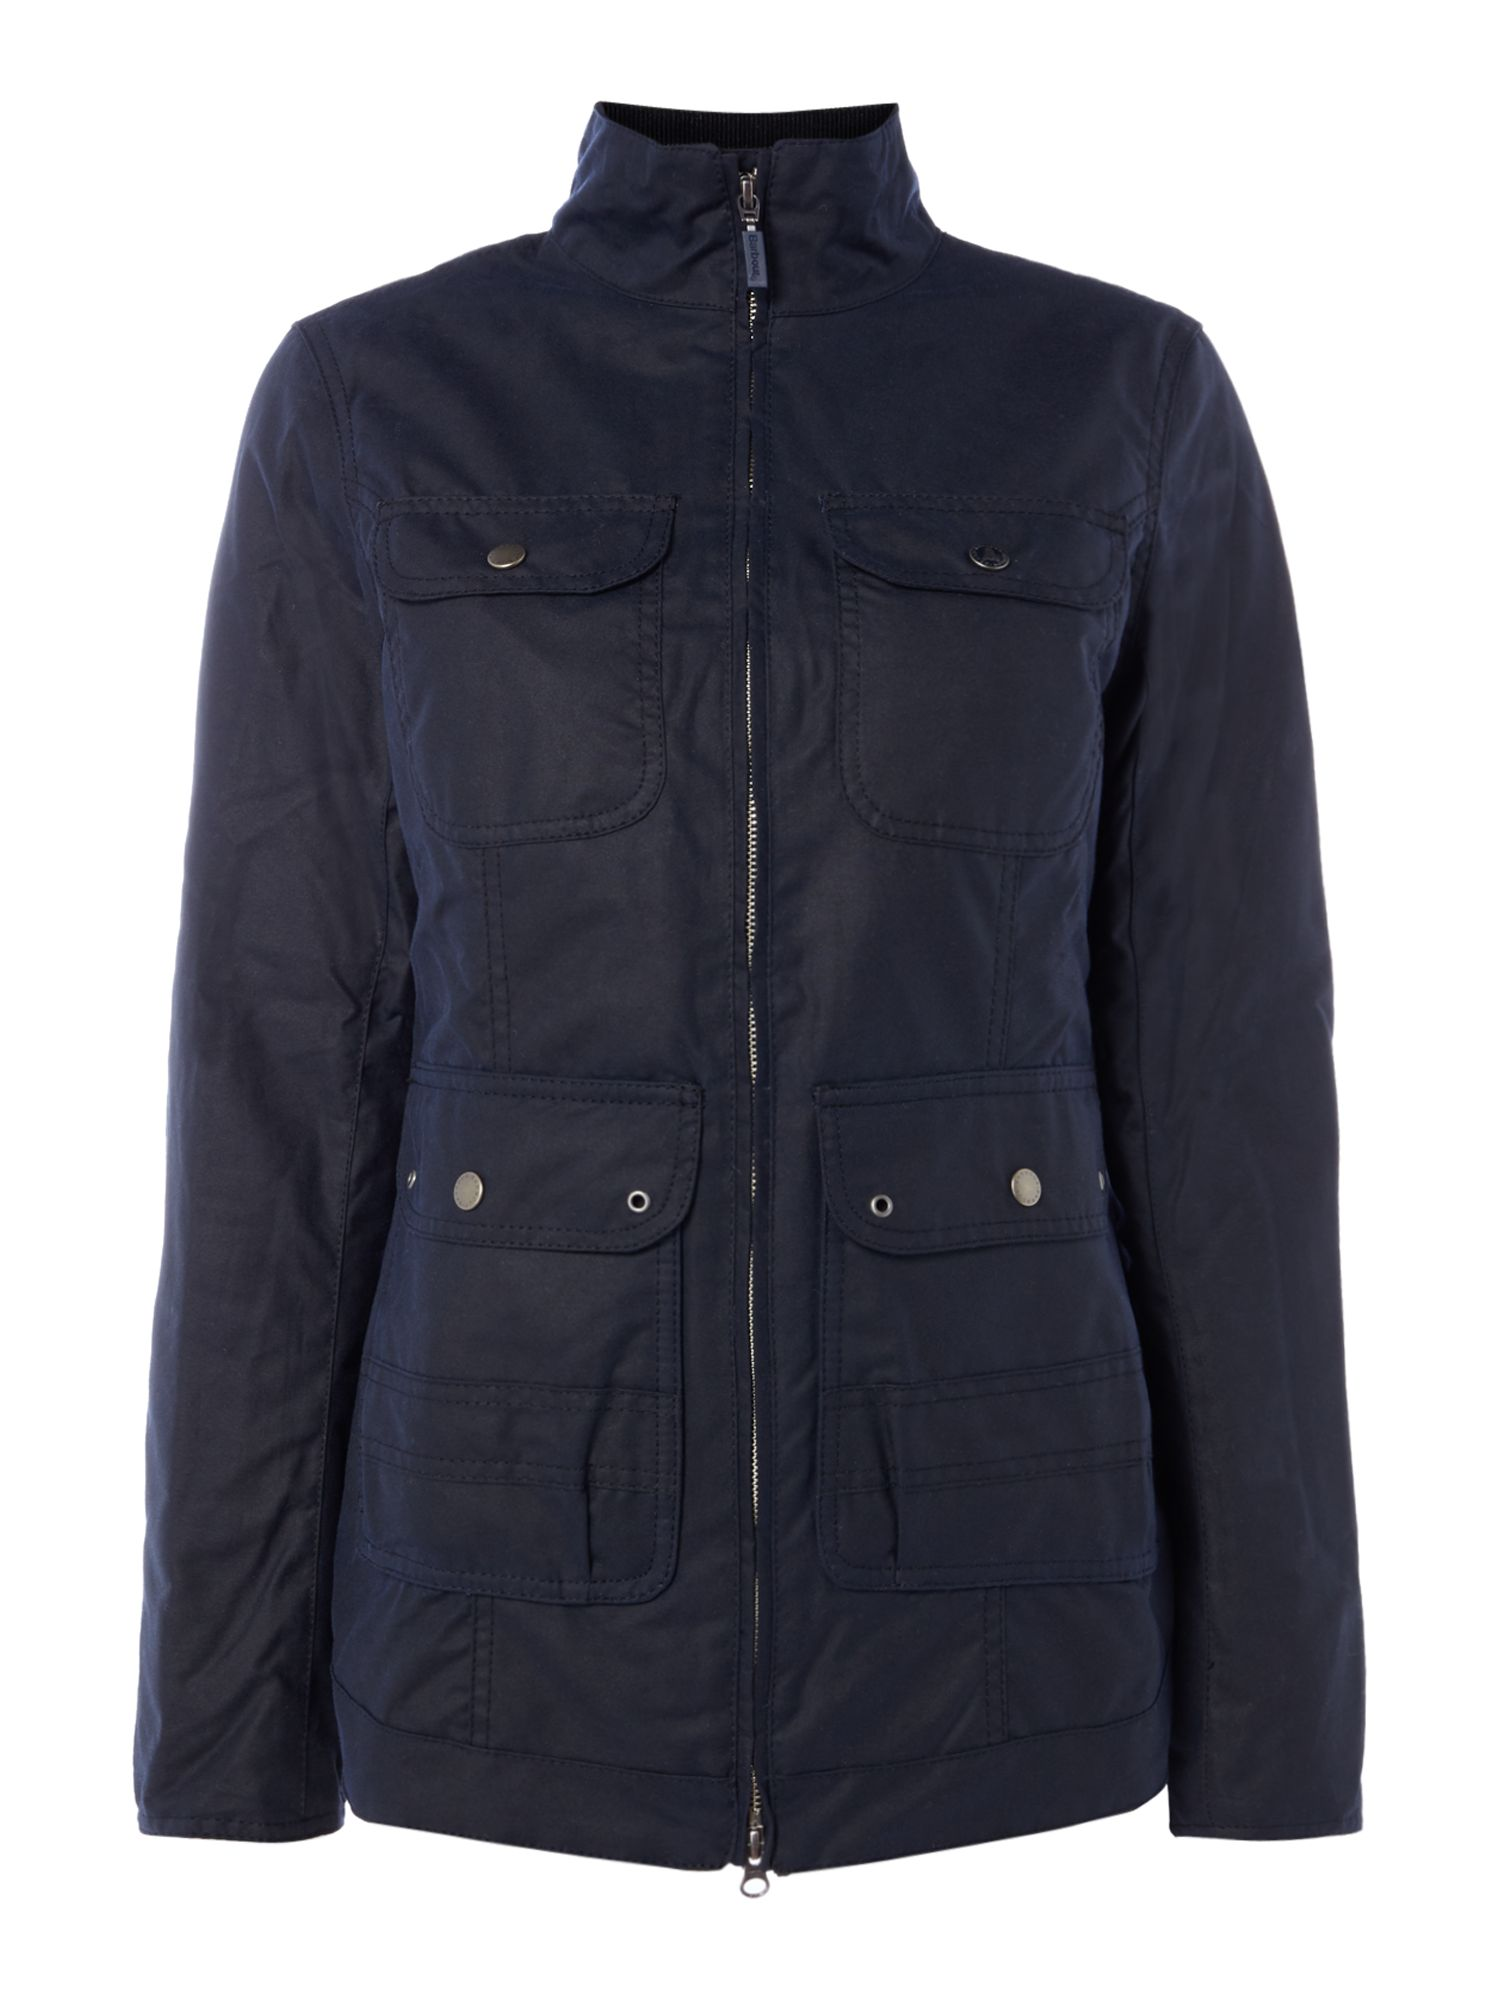 Barbour Filey Wax Jacket, Dark Blue